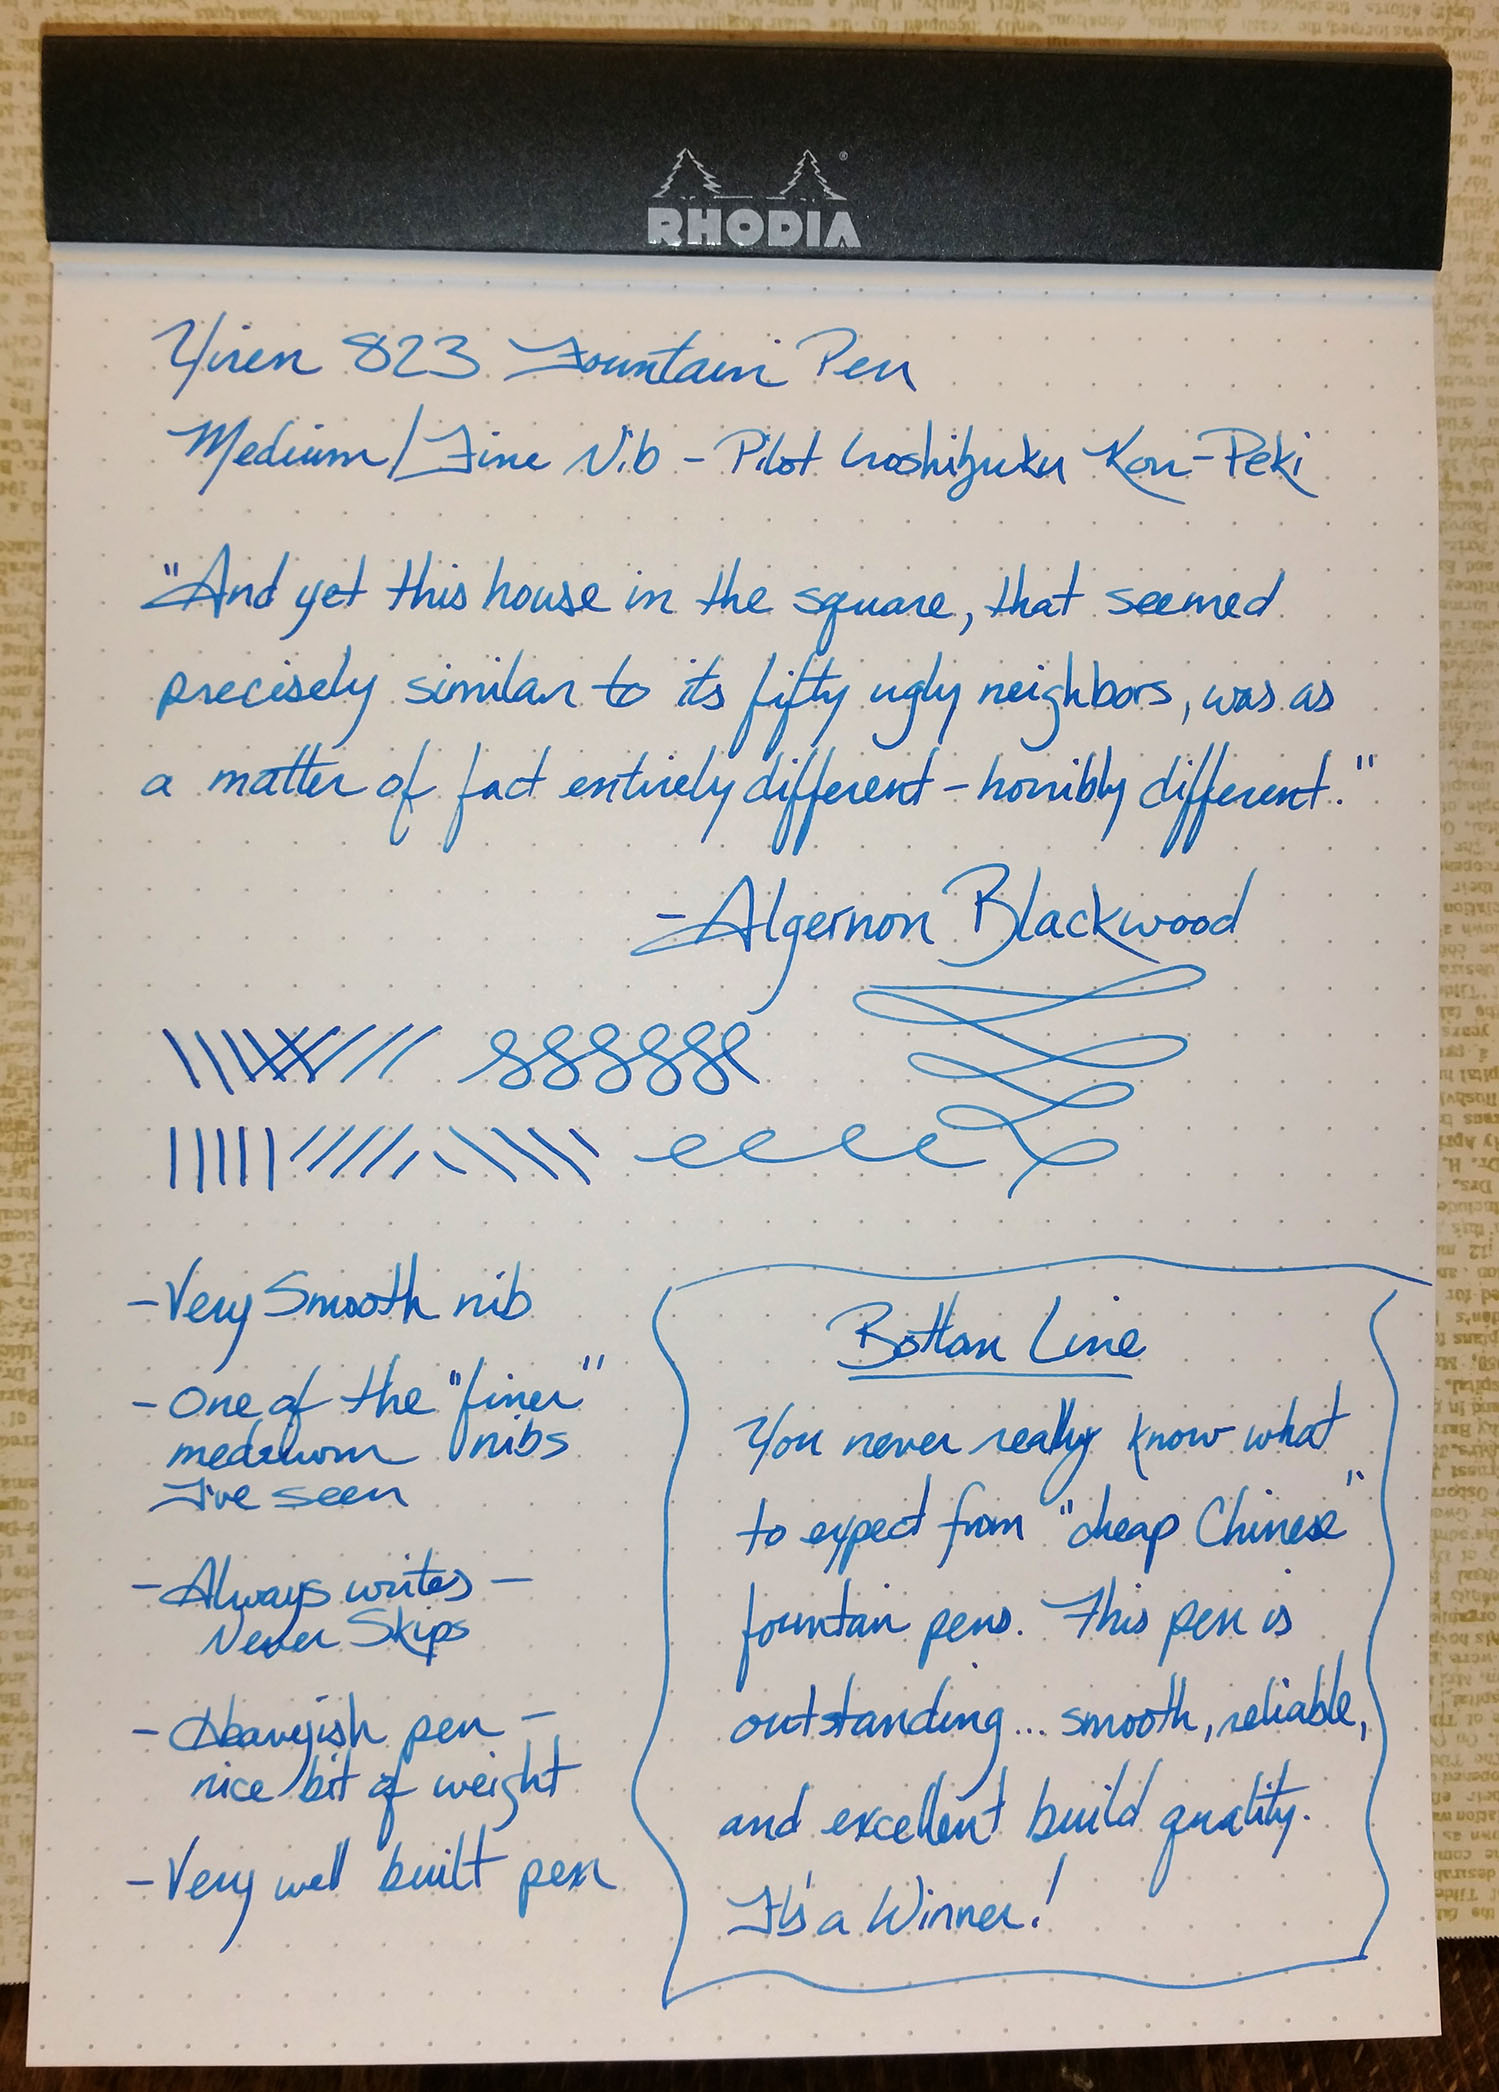 Writing sample from the Yiren 823 Fountain Pen